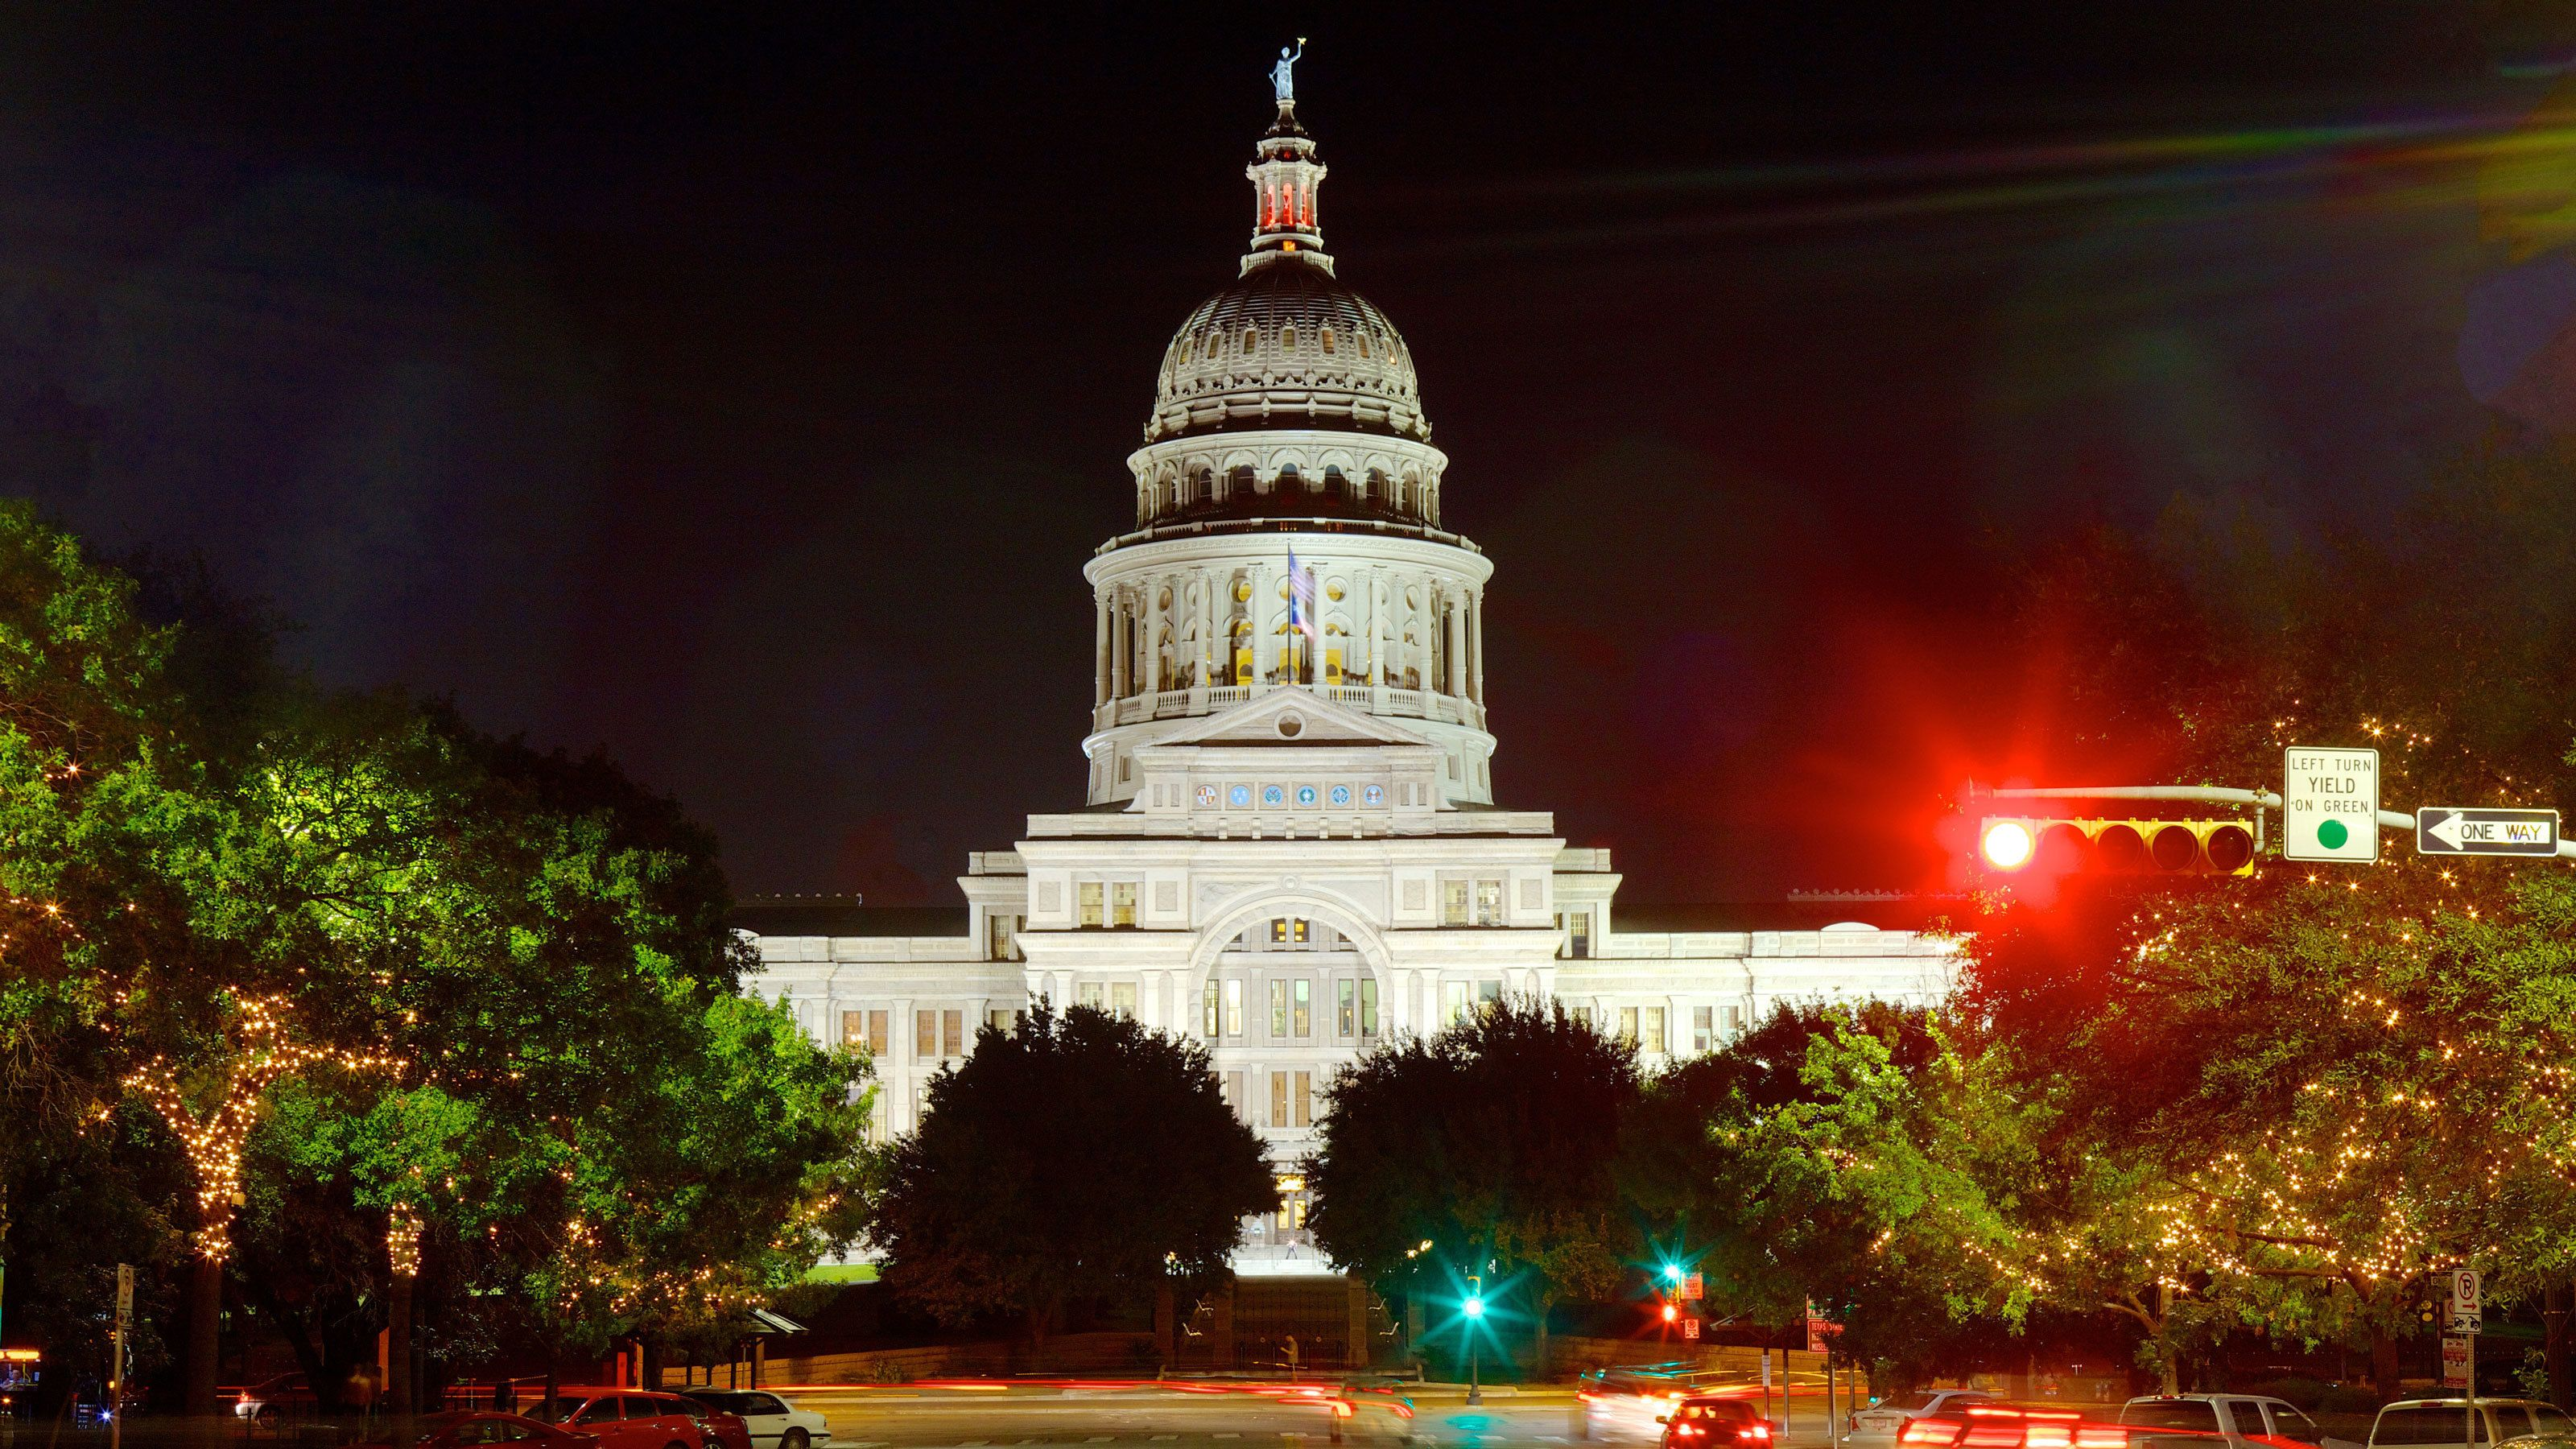 Texas State Capital building in Austin Texas